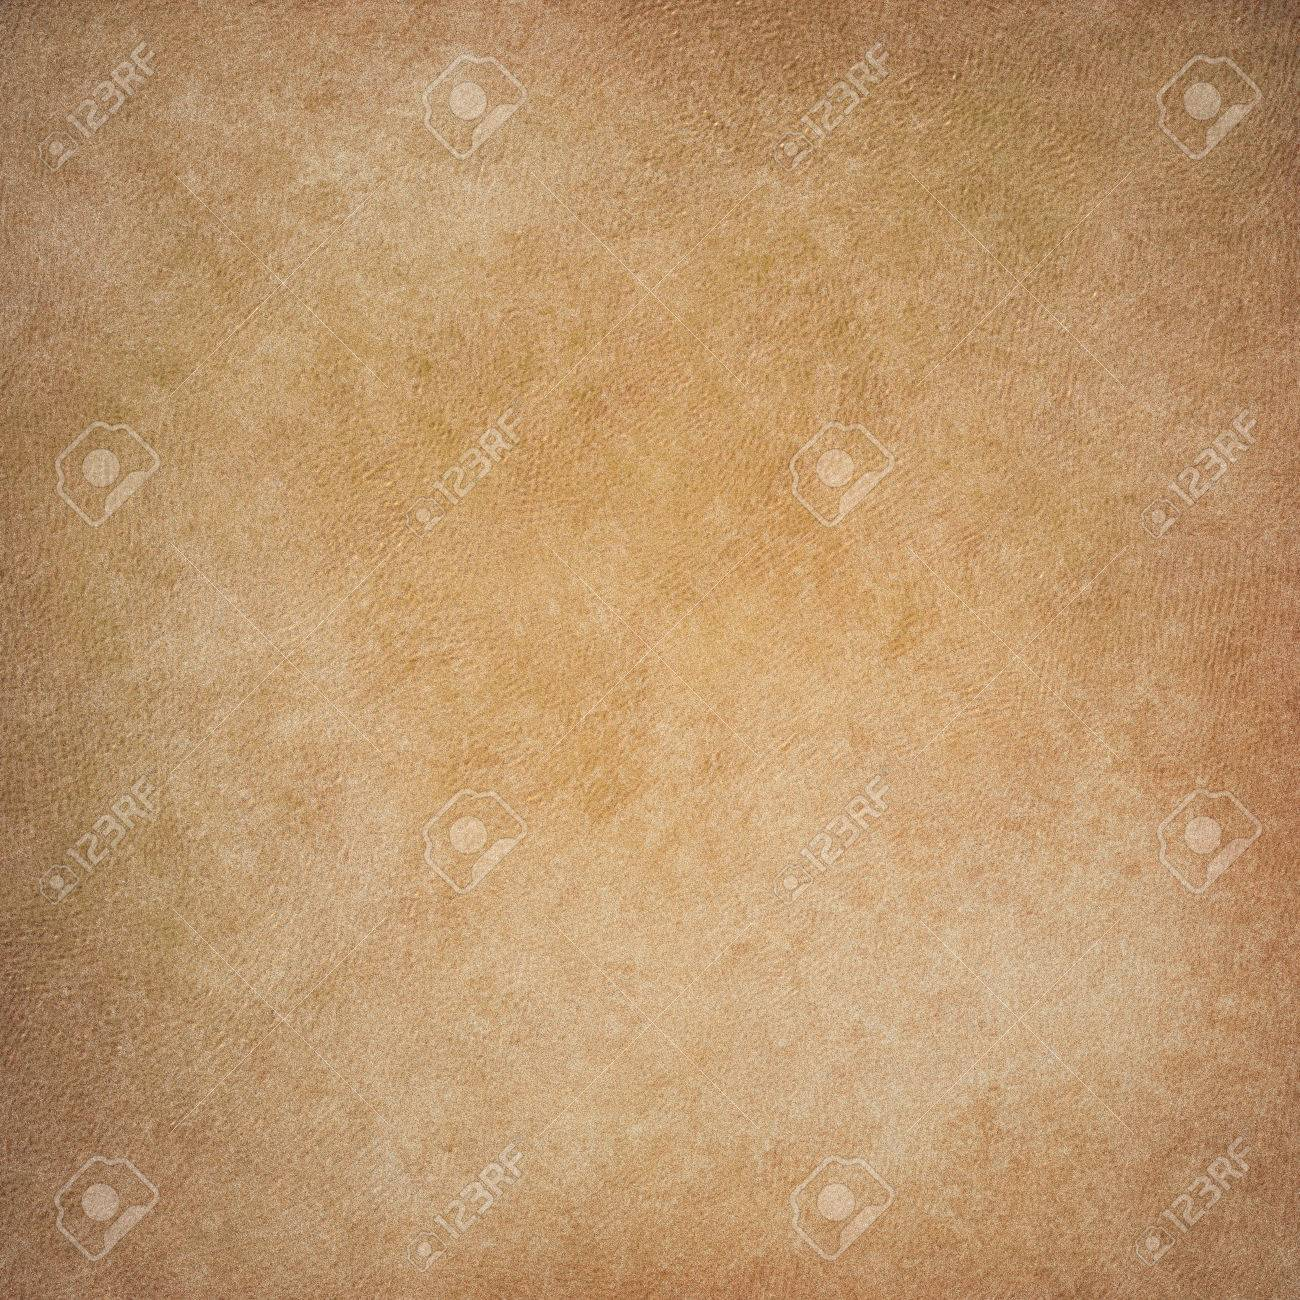 Faded Light Brown Parchment Paper Background With Painted Wall Or Canvas Texture Design Stock Photo